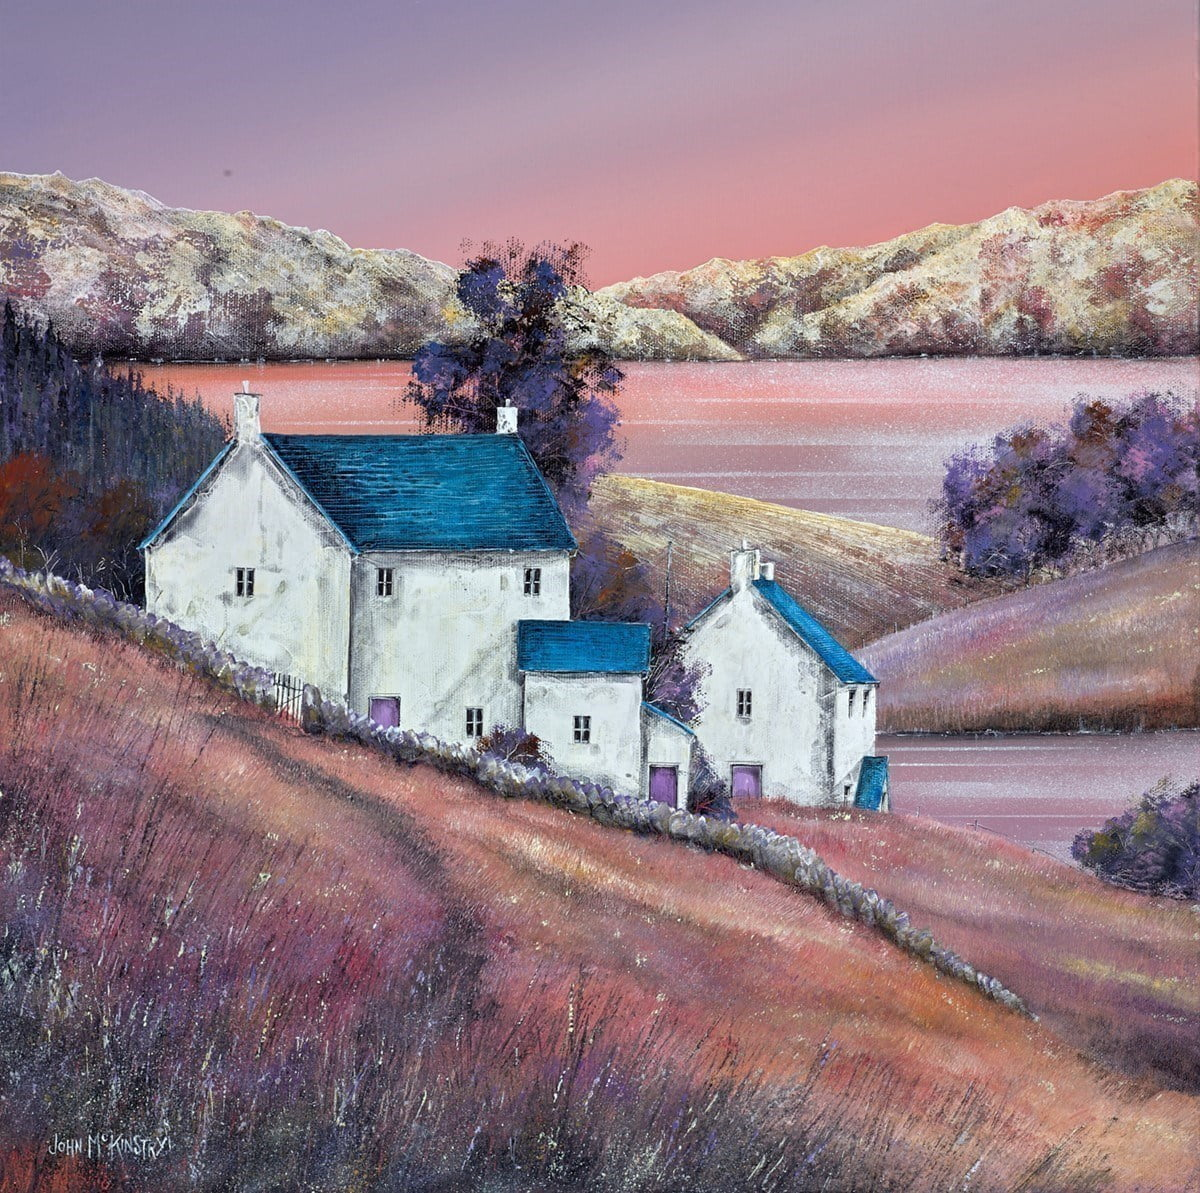 Dusk Light ~ John Mckinstry